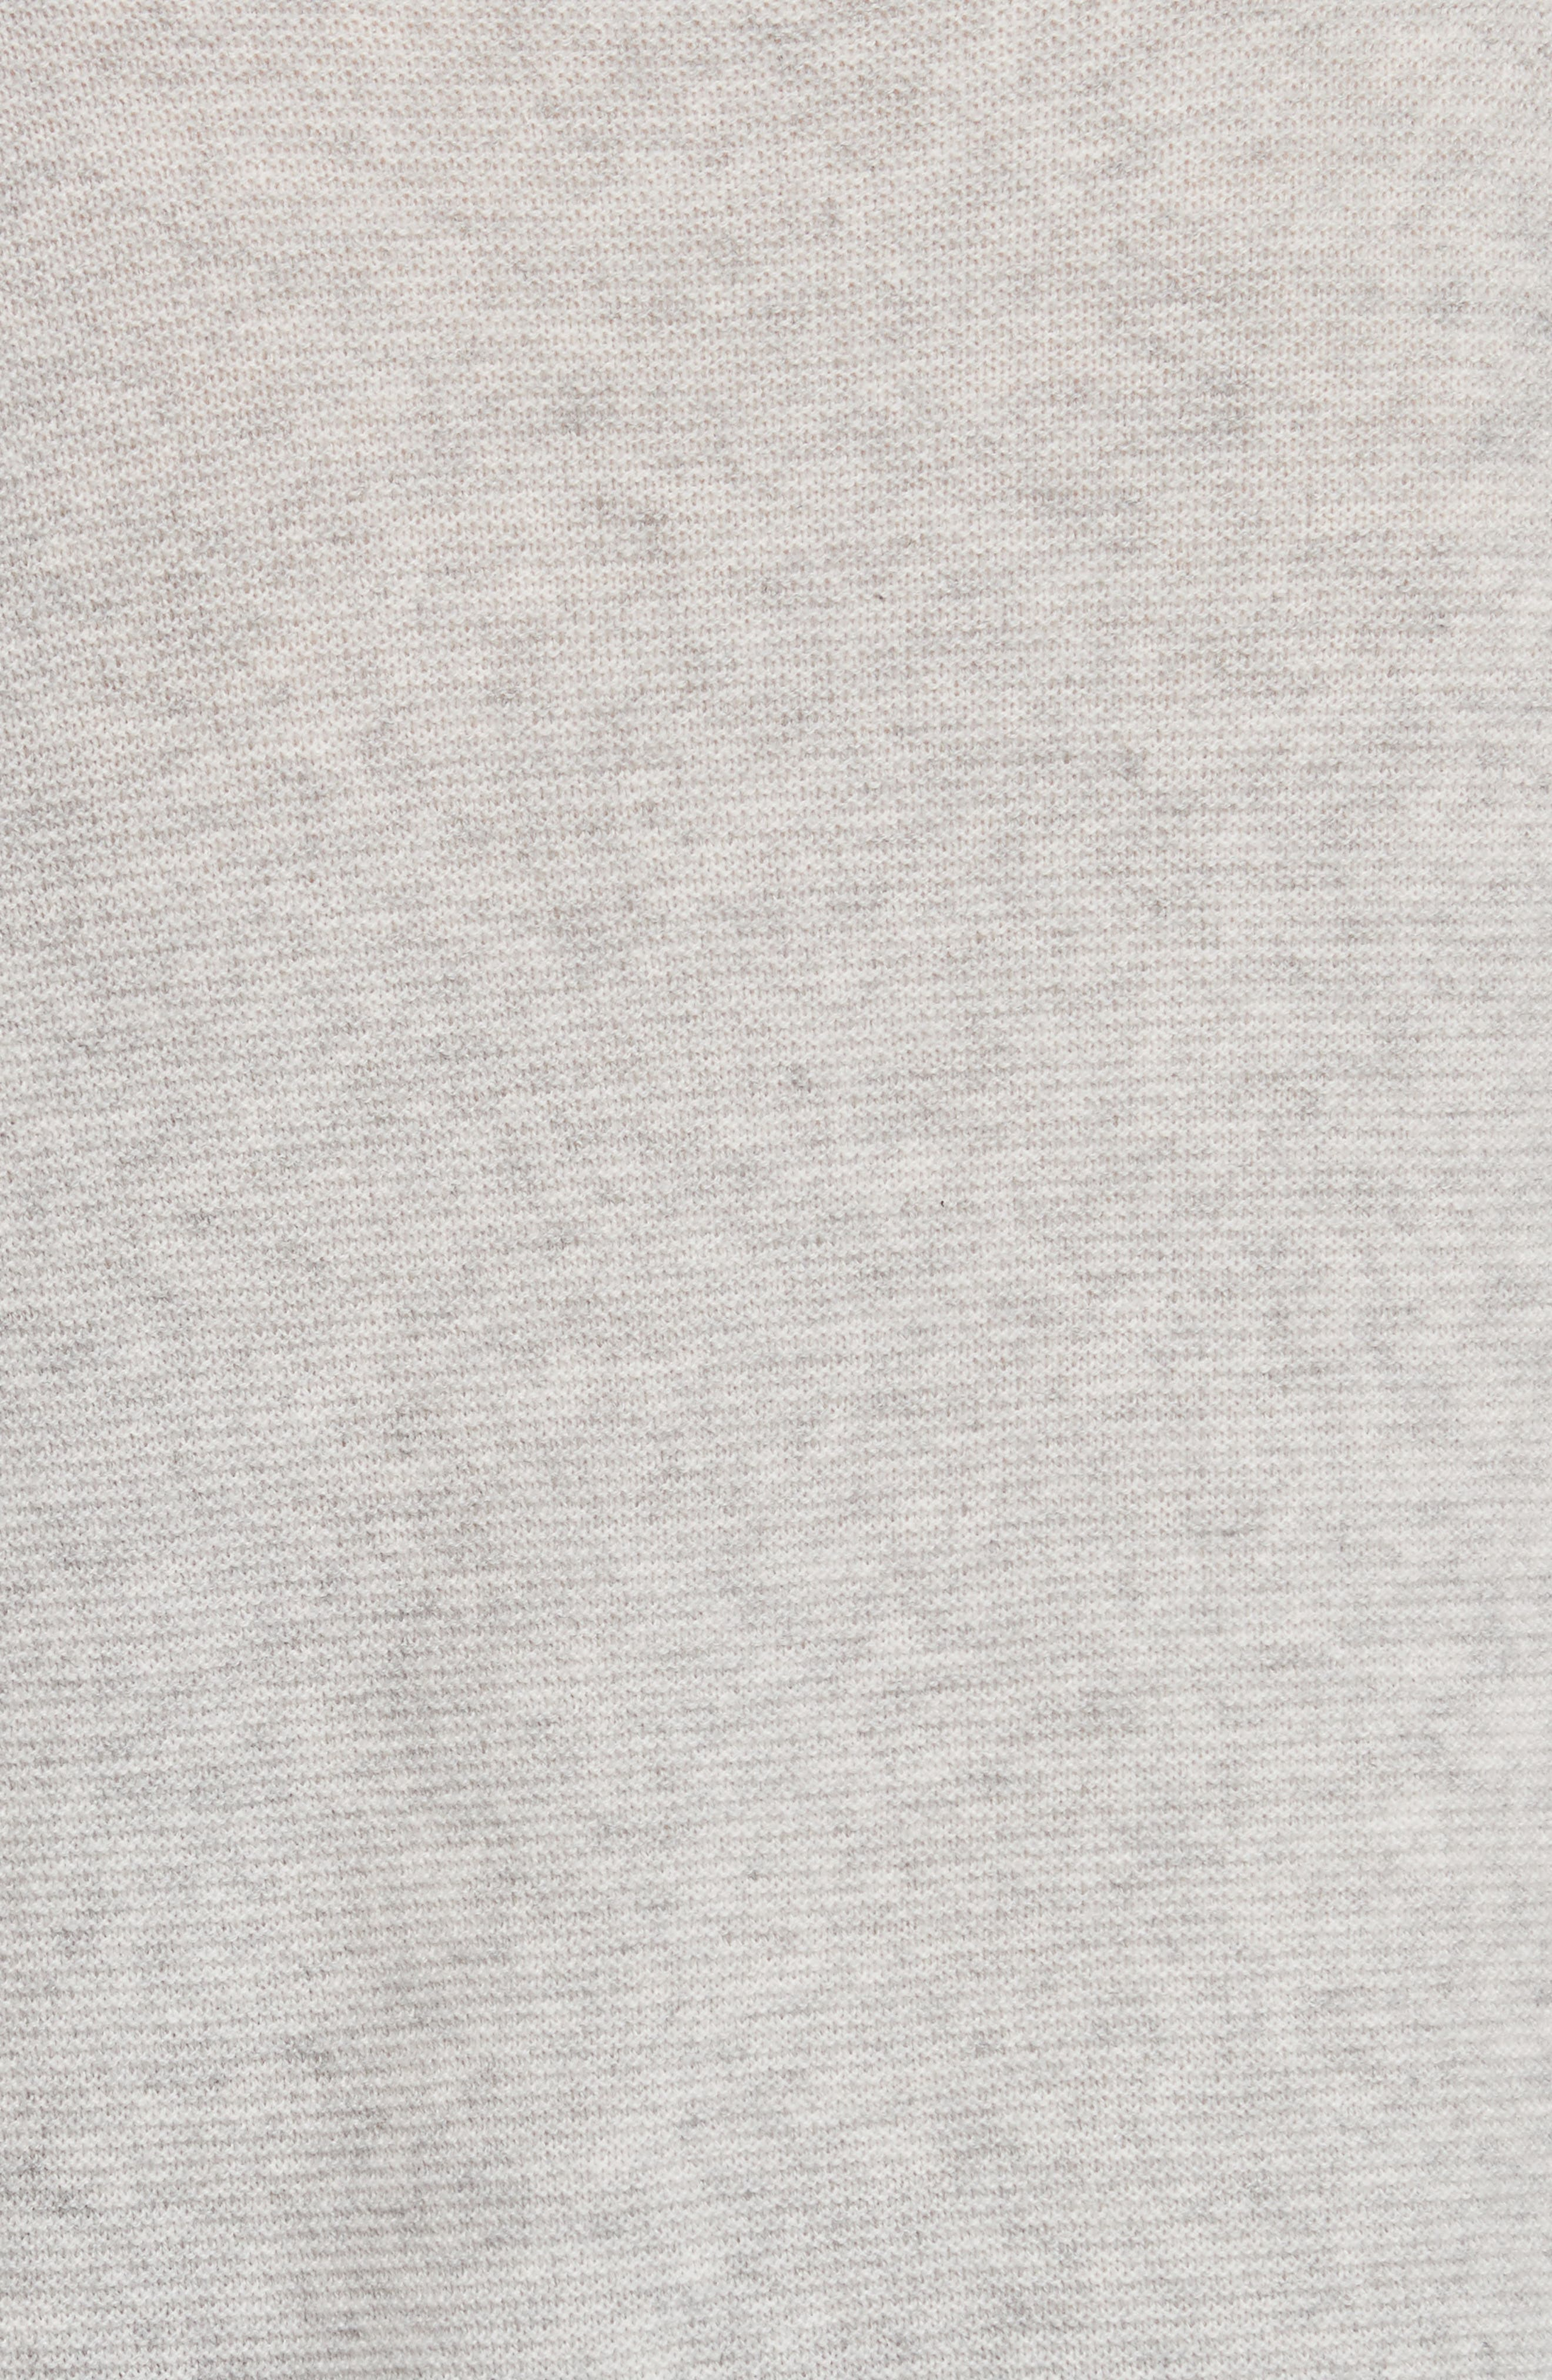 Noely Wool and Cashmere Sweater,                             Alternate thumbnail 5, color,                             Light Heather Grey